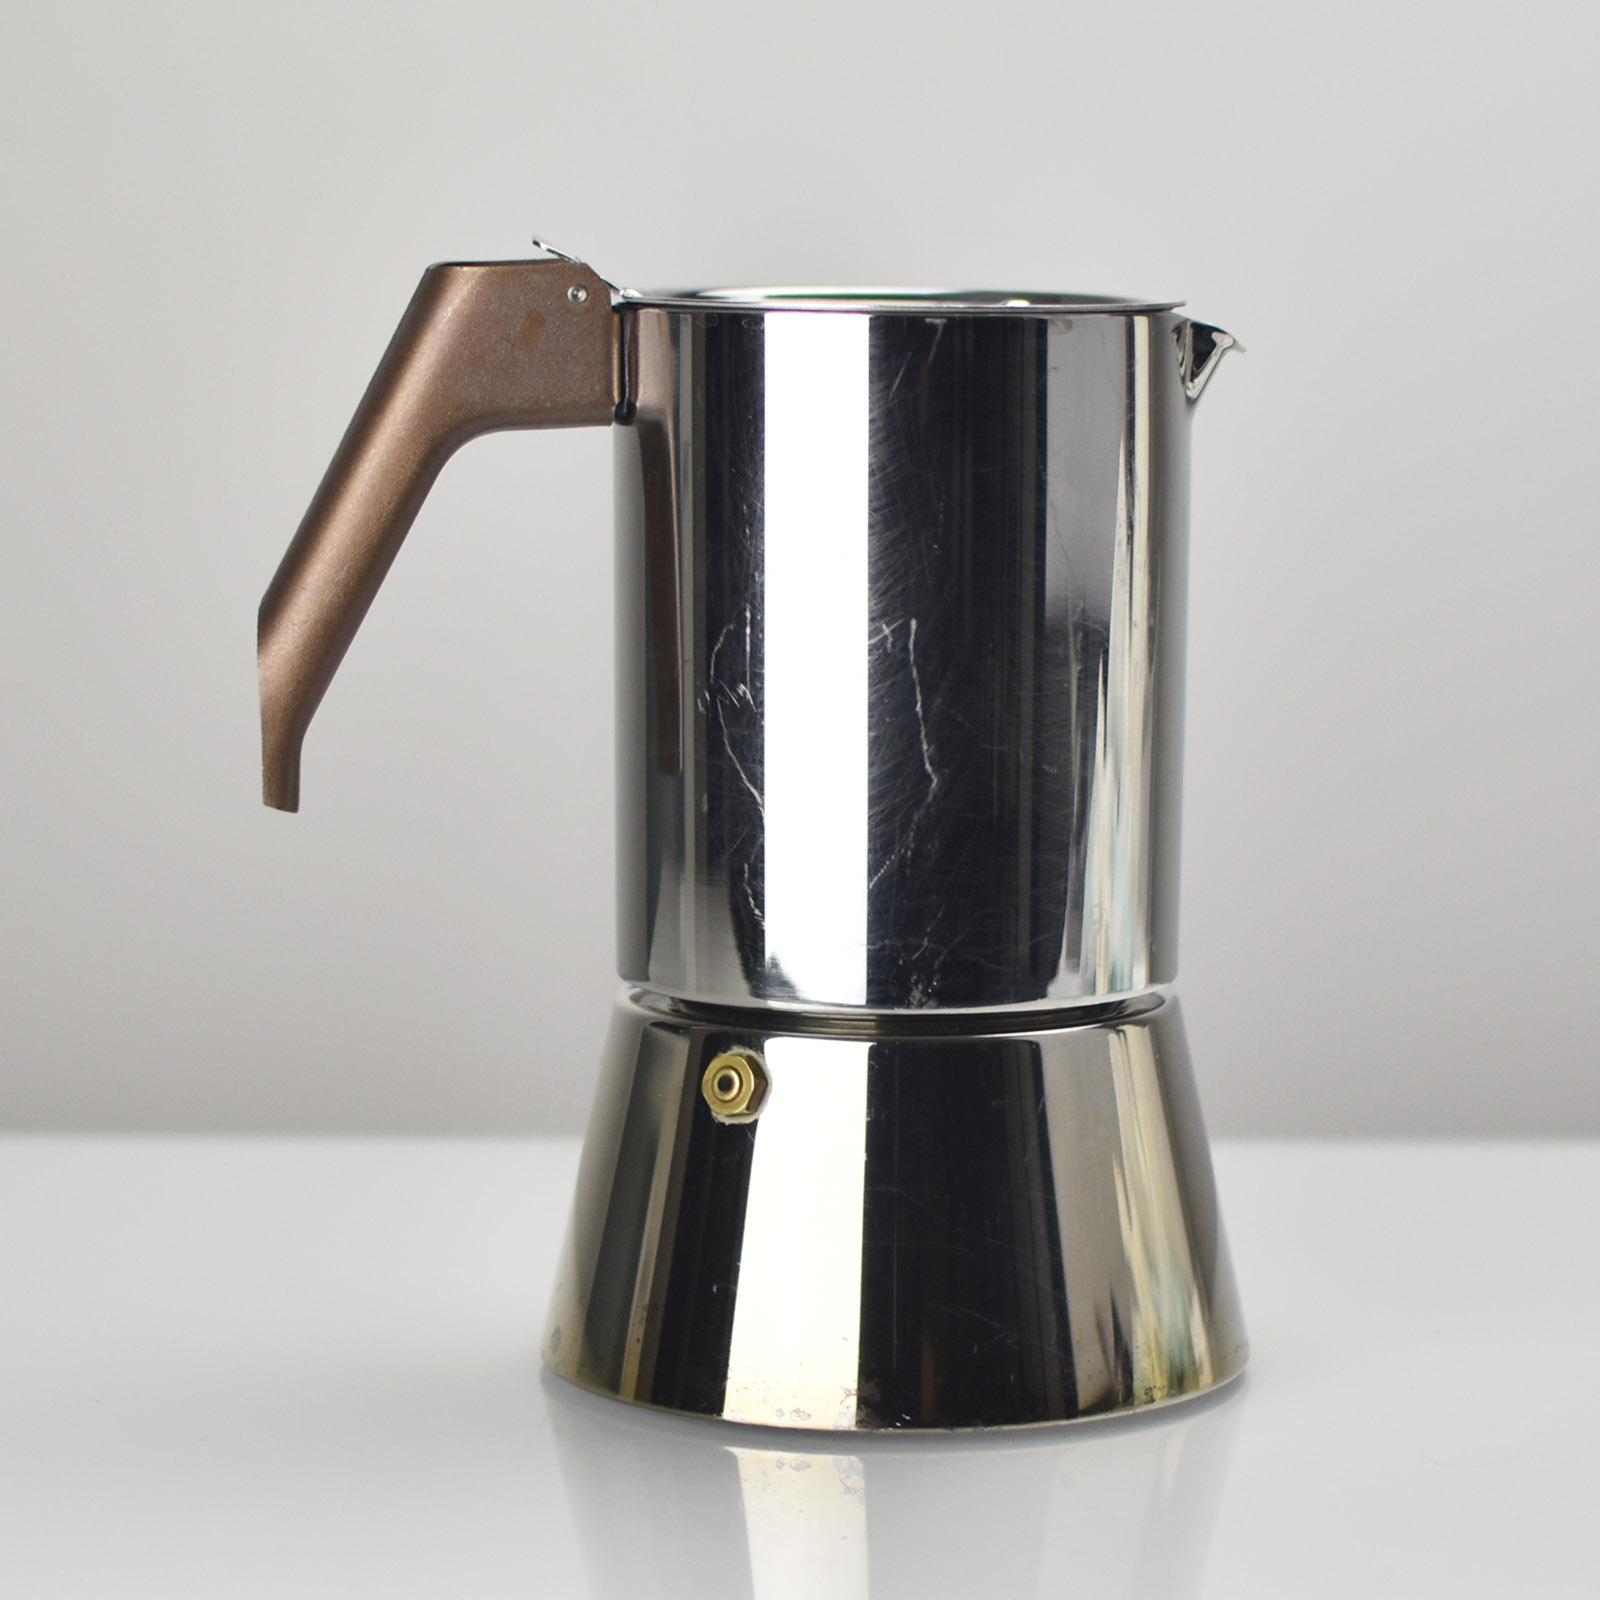 Alessi Espressokocher Details About A Vintage Alessi Espresso Coffee Maker Design Richard Sapper Stainless Steel